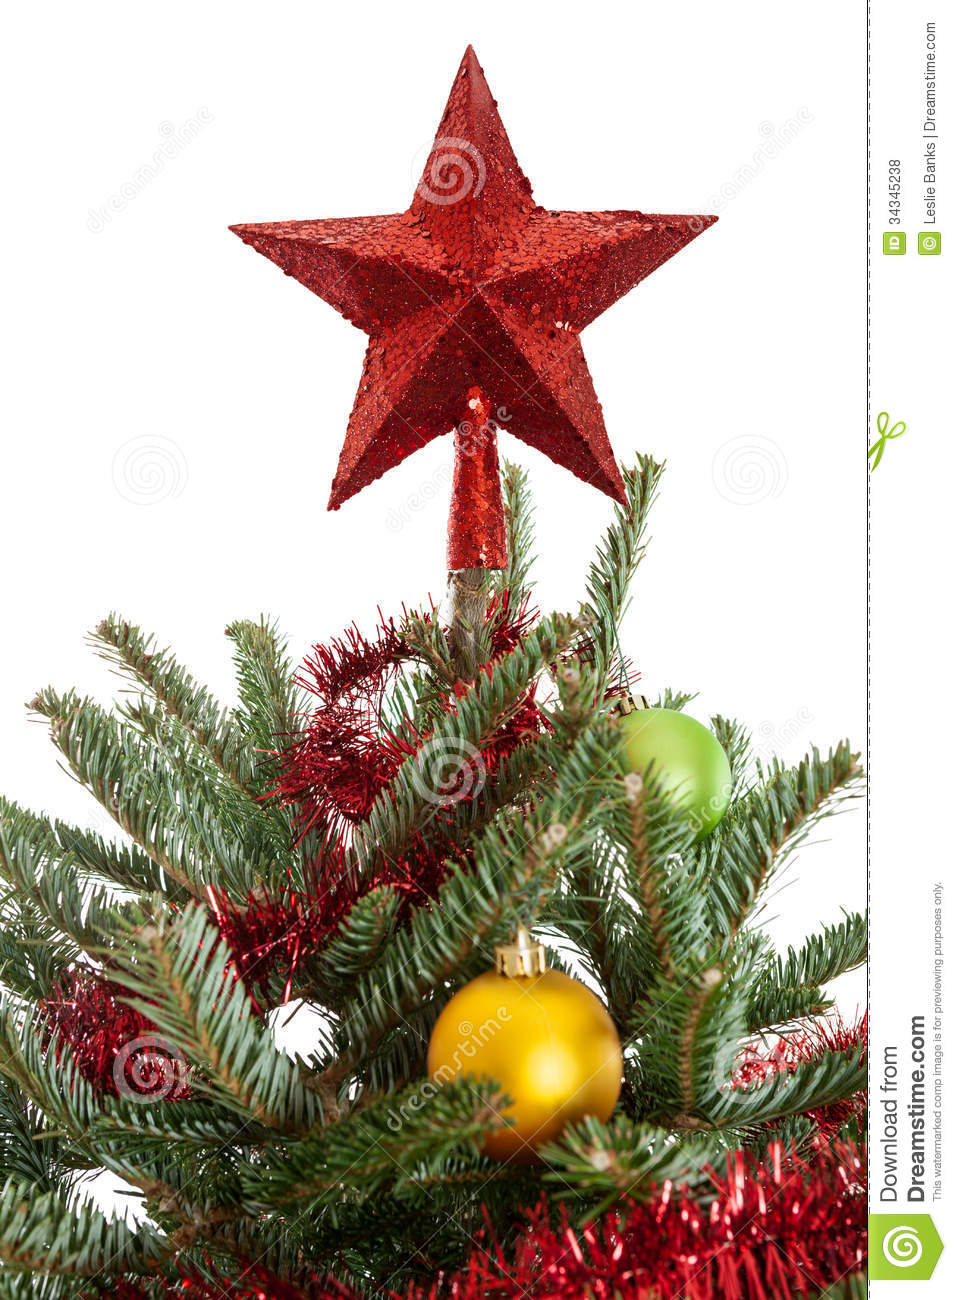 Of a red star on top of a decorated christmas tree isolated on white